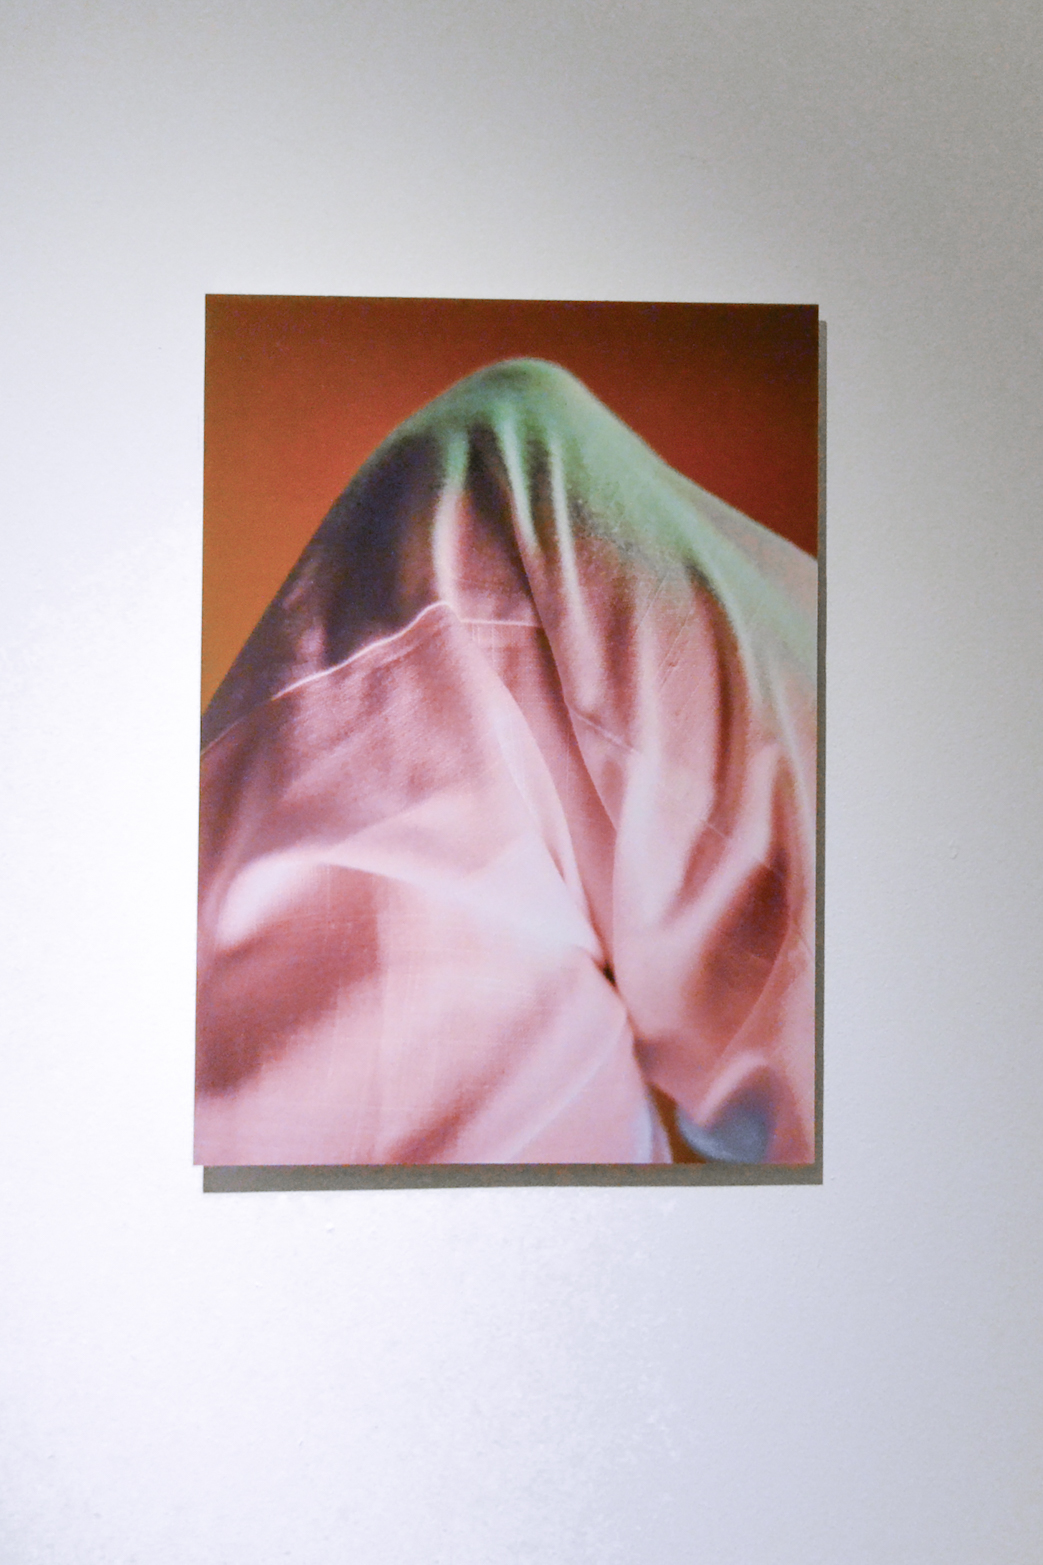 Ilona Sagar, (Untitled) from Soft Addiction, 2014. C-type print on aluminum.